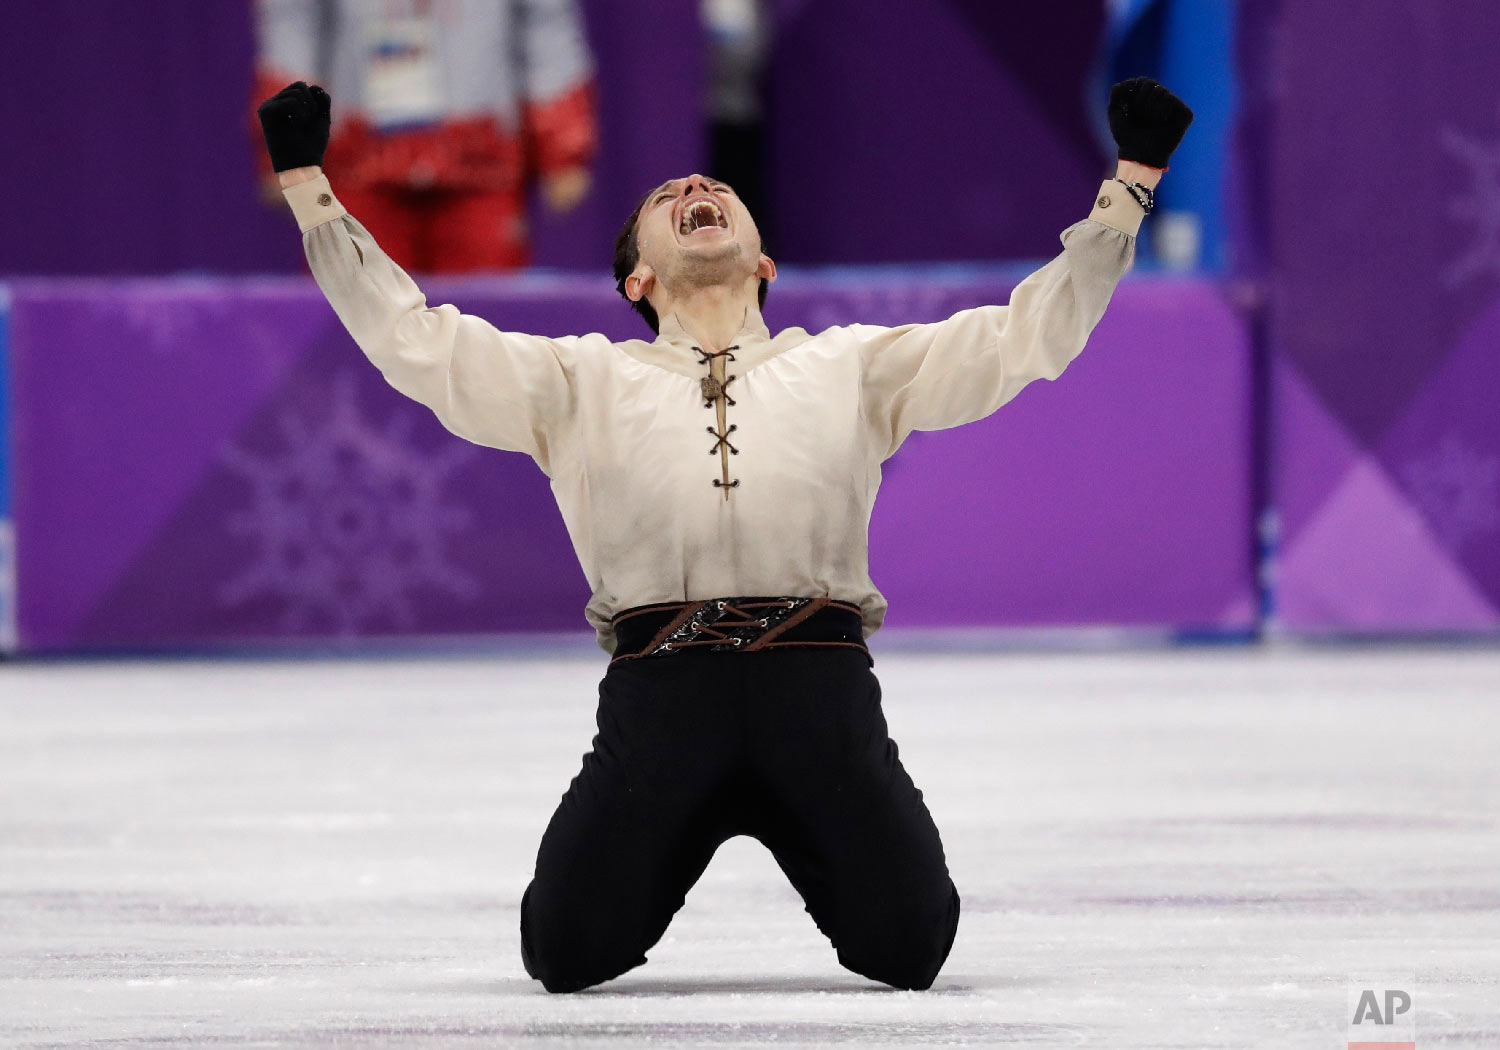 Alexei Bychenko of Israel reacts after his performance in the men's free figure skating final in the Gangneung Ice Arena at the 2018 Winter Olympics in Gangneung, South Korea, Saturday, Feb. 17, 2018. (AP Photo/Bernat Armangue)